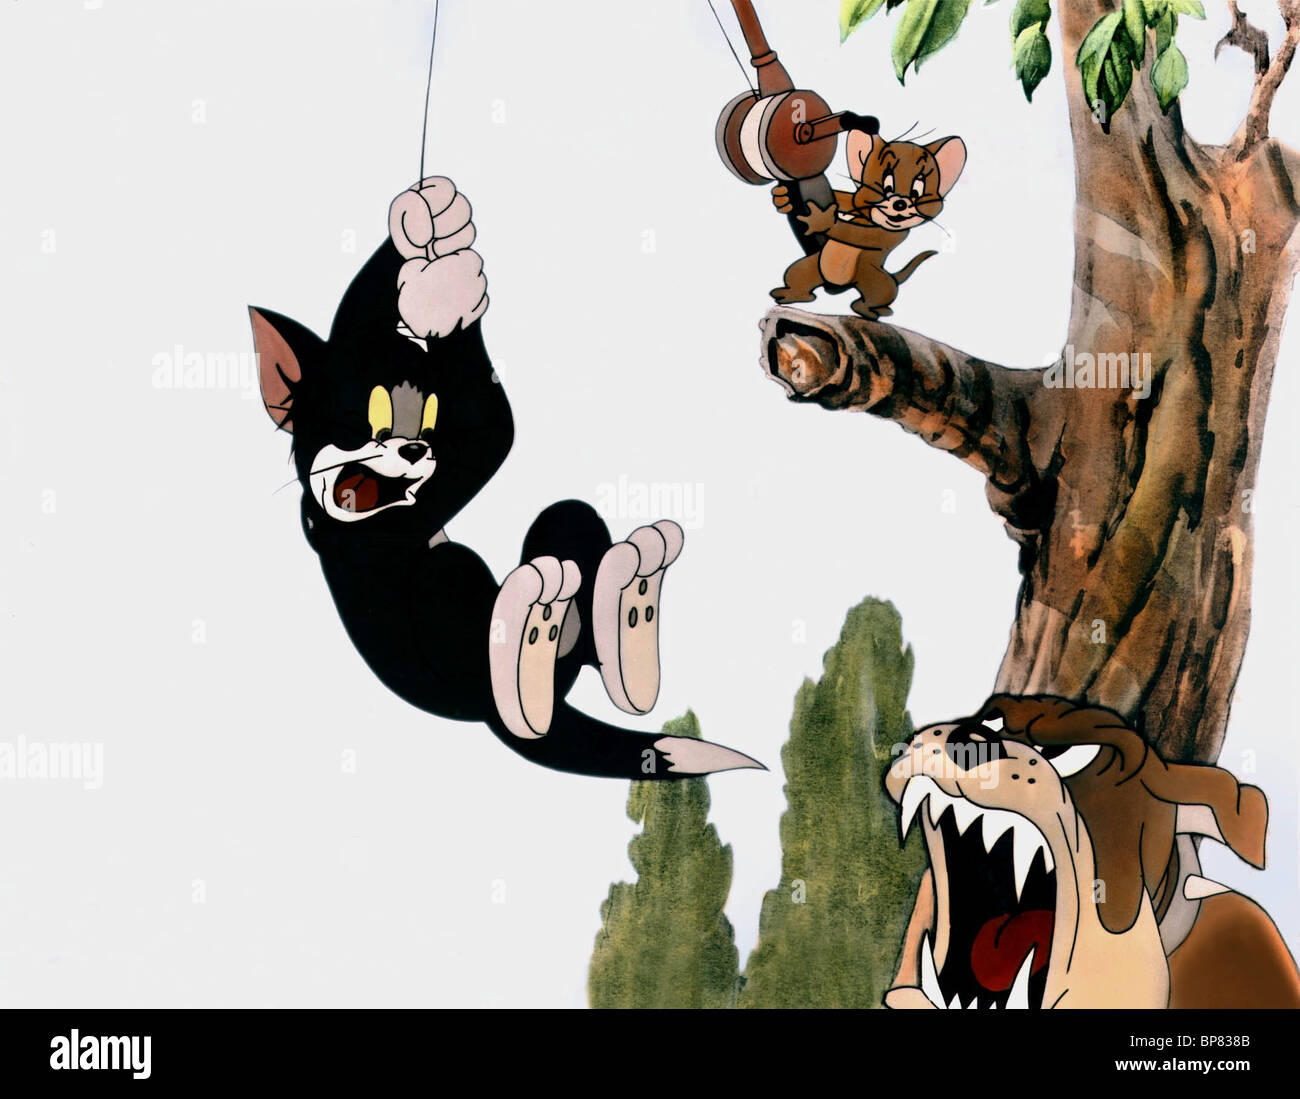 Tom And Jerry Stock Photos Tom And Jerry Stock Images Alamy